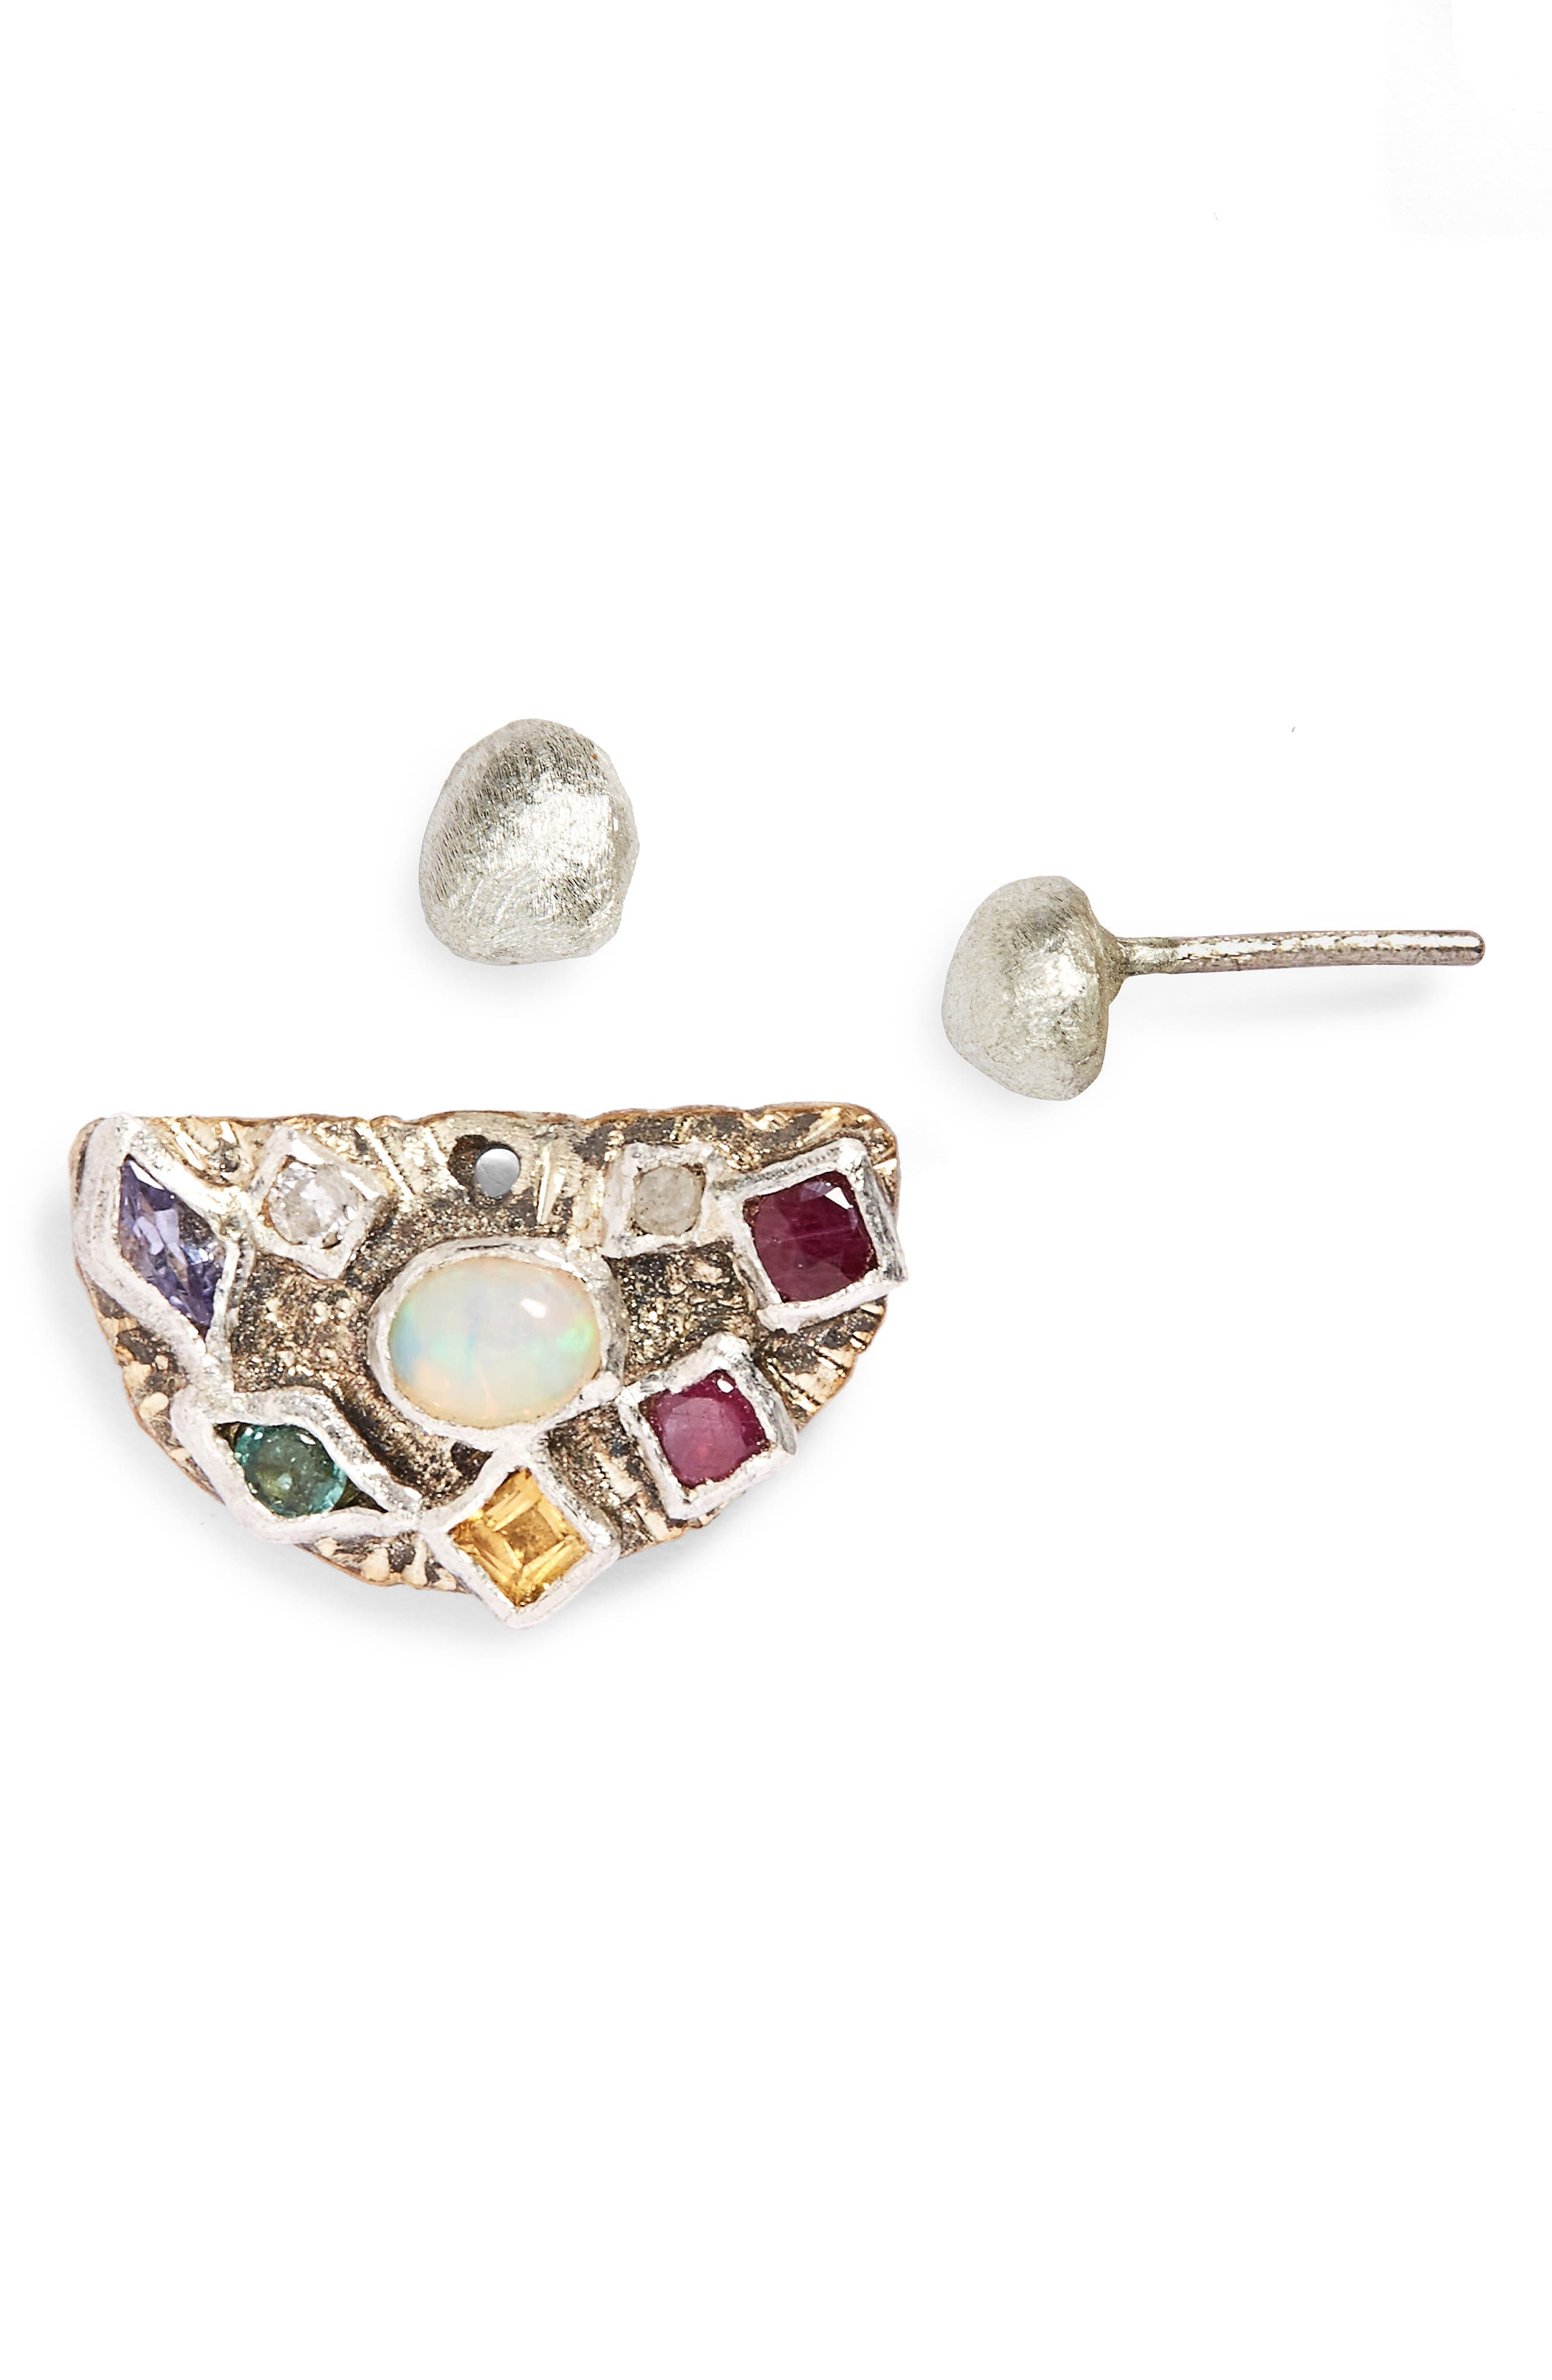 Multistone Ear Jacket with Sterling Silver Stud,                             Main thumbnail 1, color,                             710